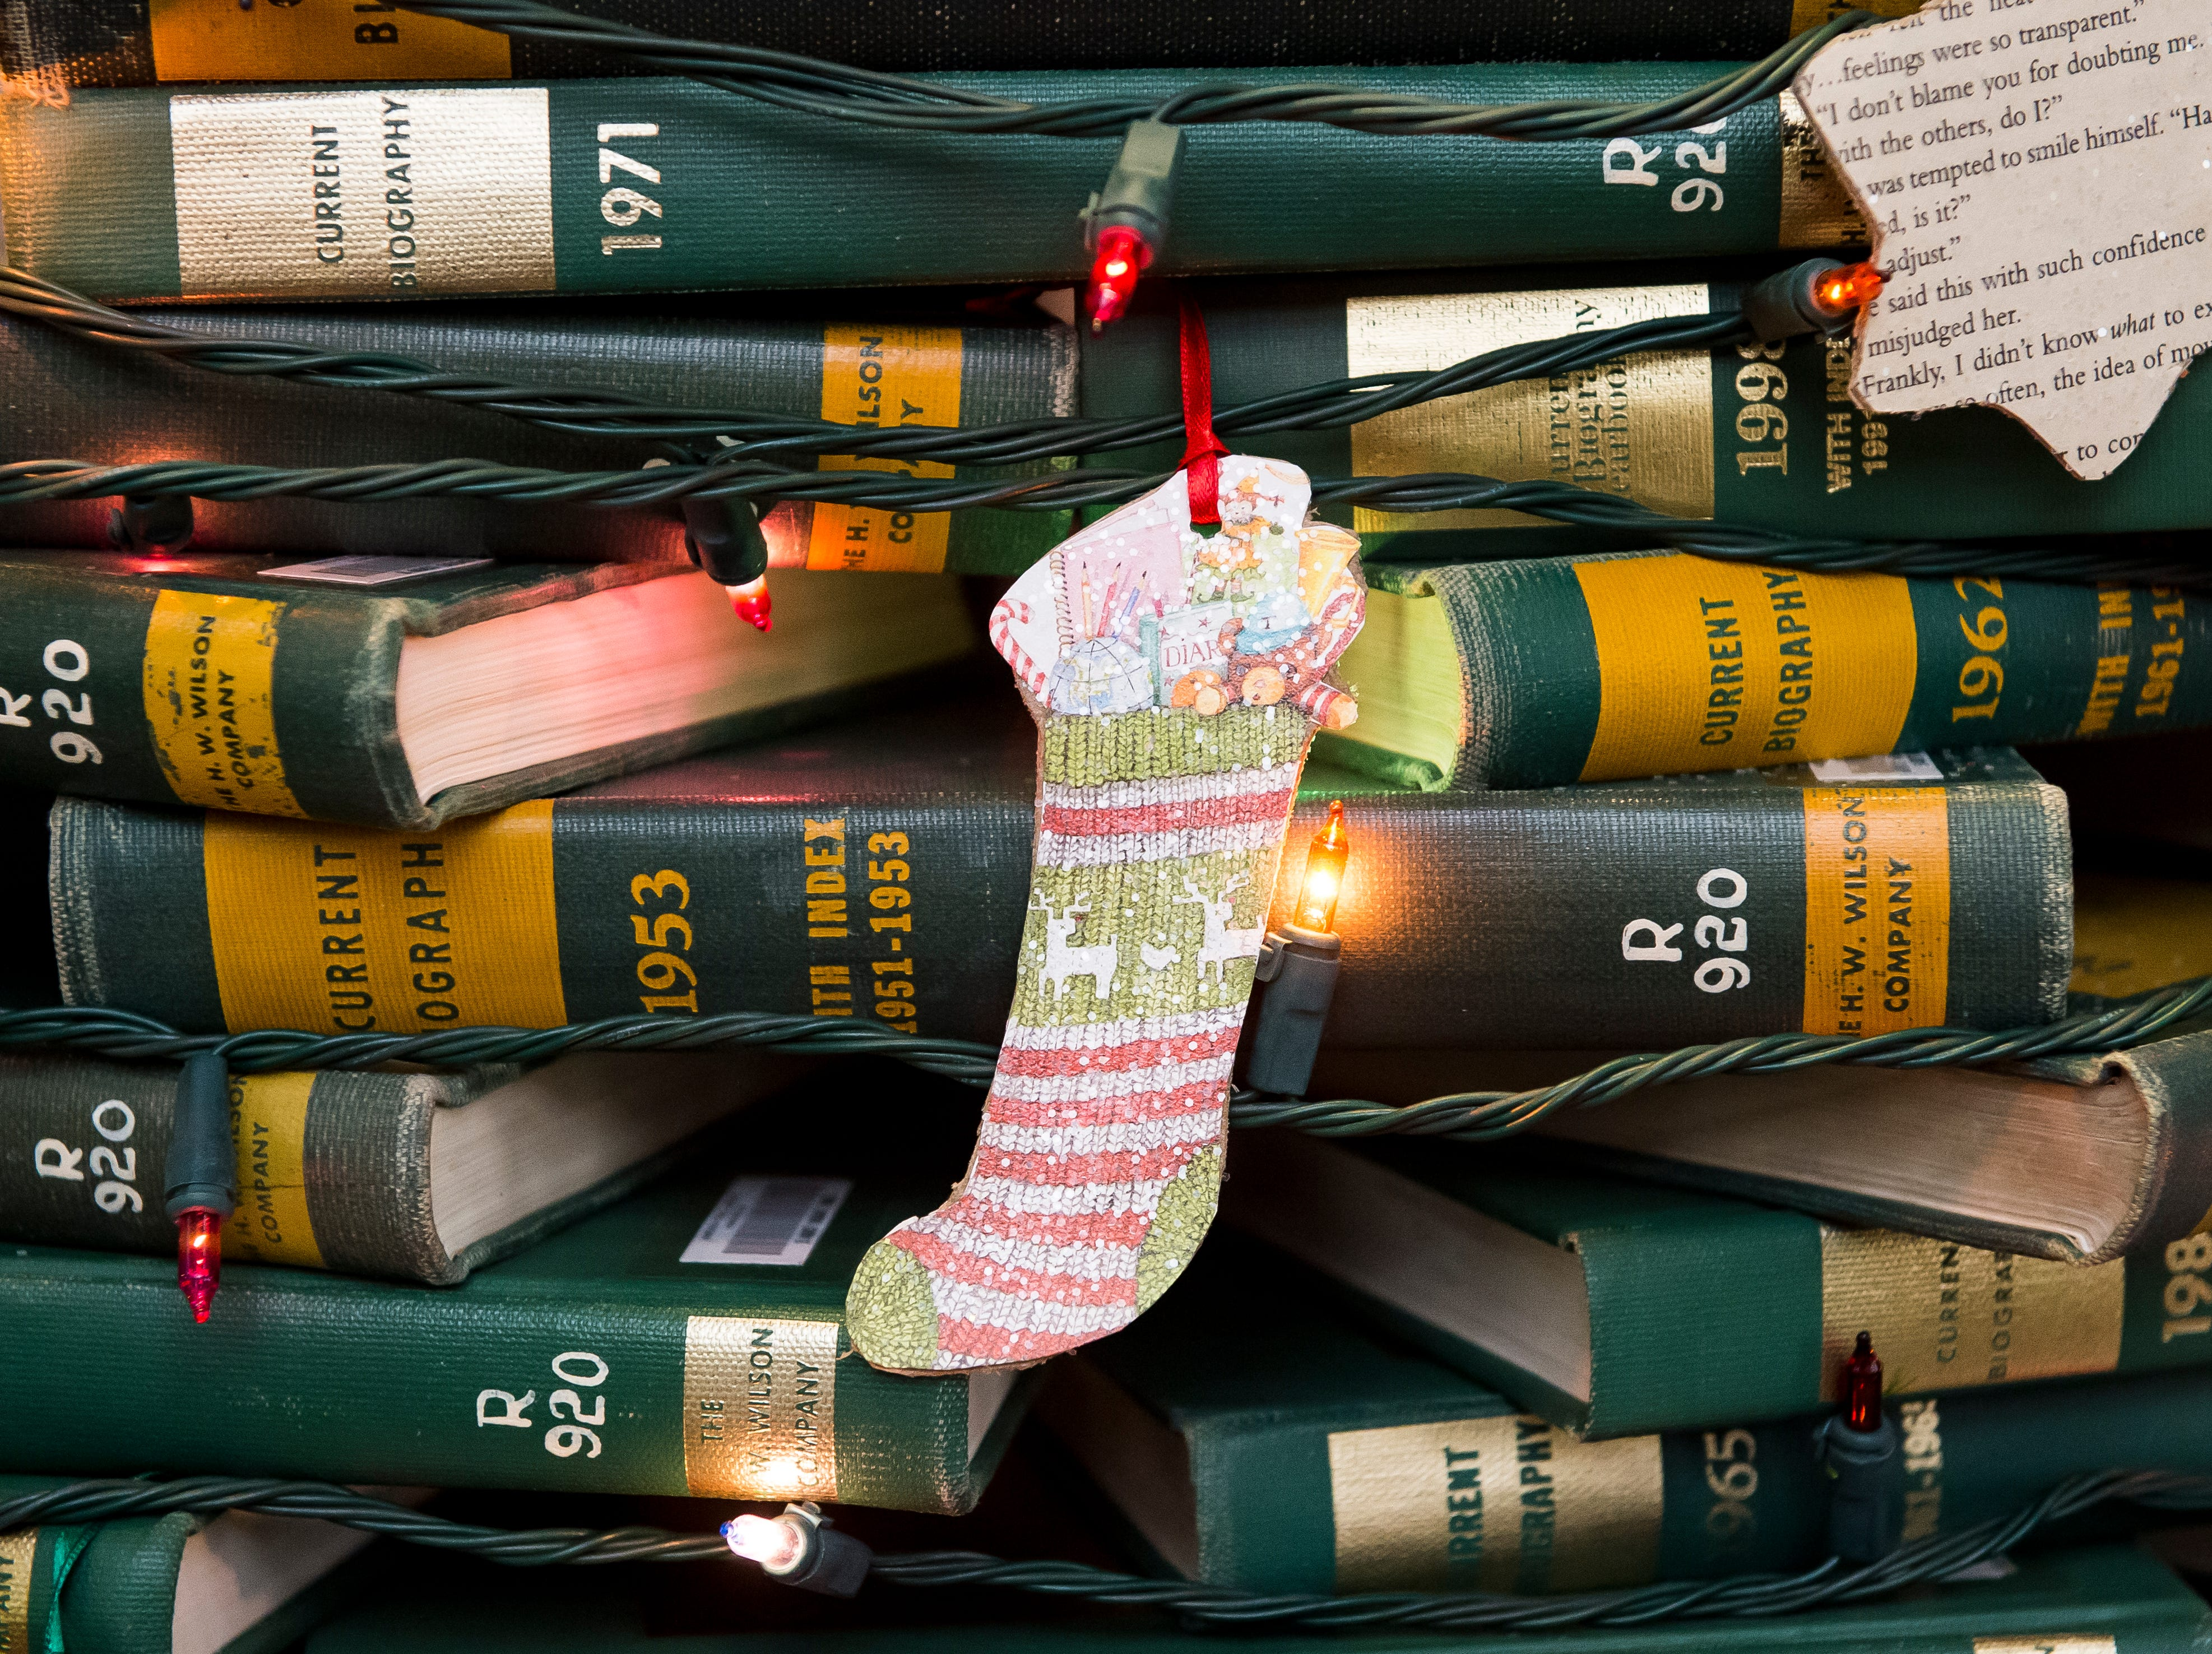 Guthrie Memorial Library located at 2 Library Place. Visit mainstreethanover.org for details about Christmas Tree Wars.